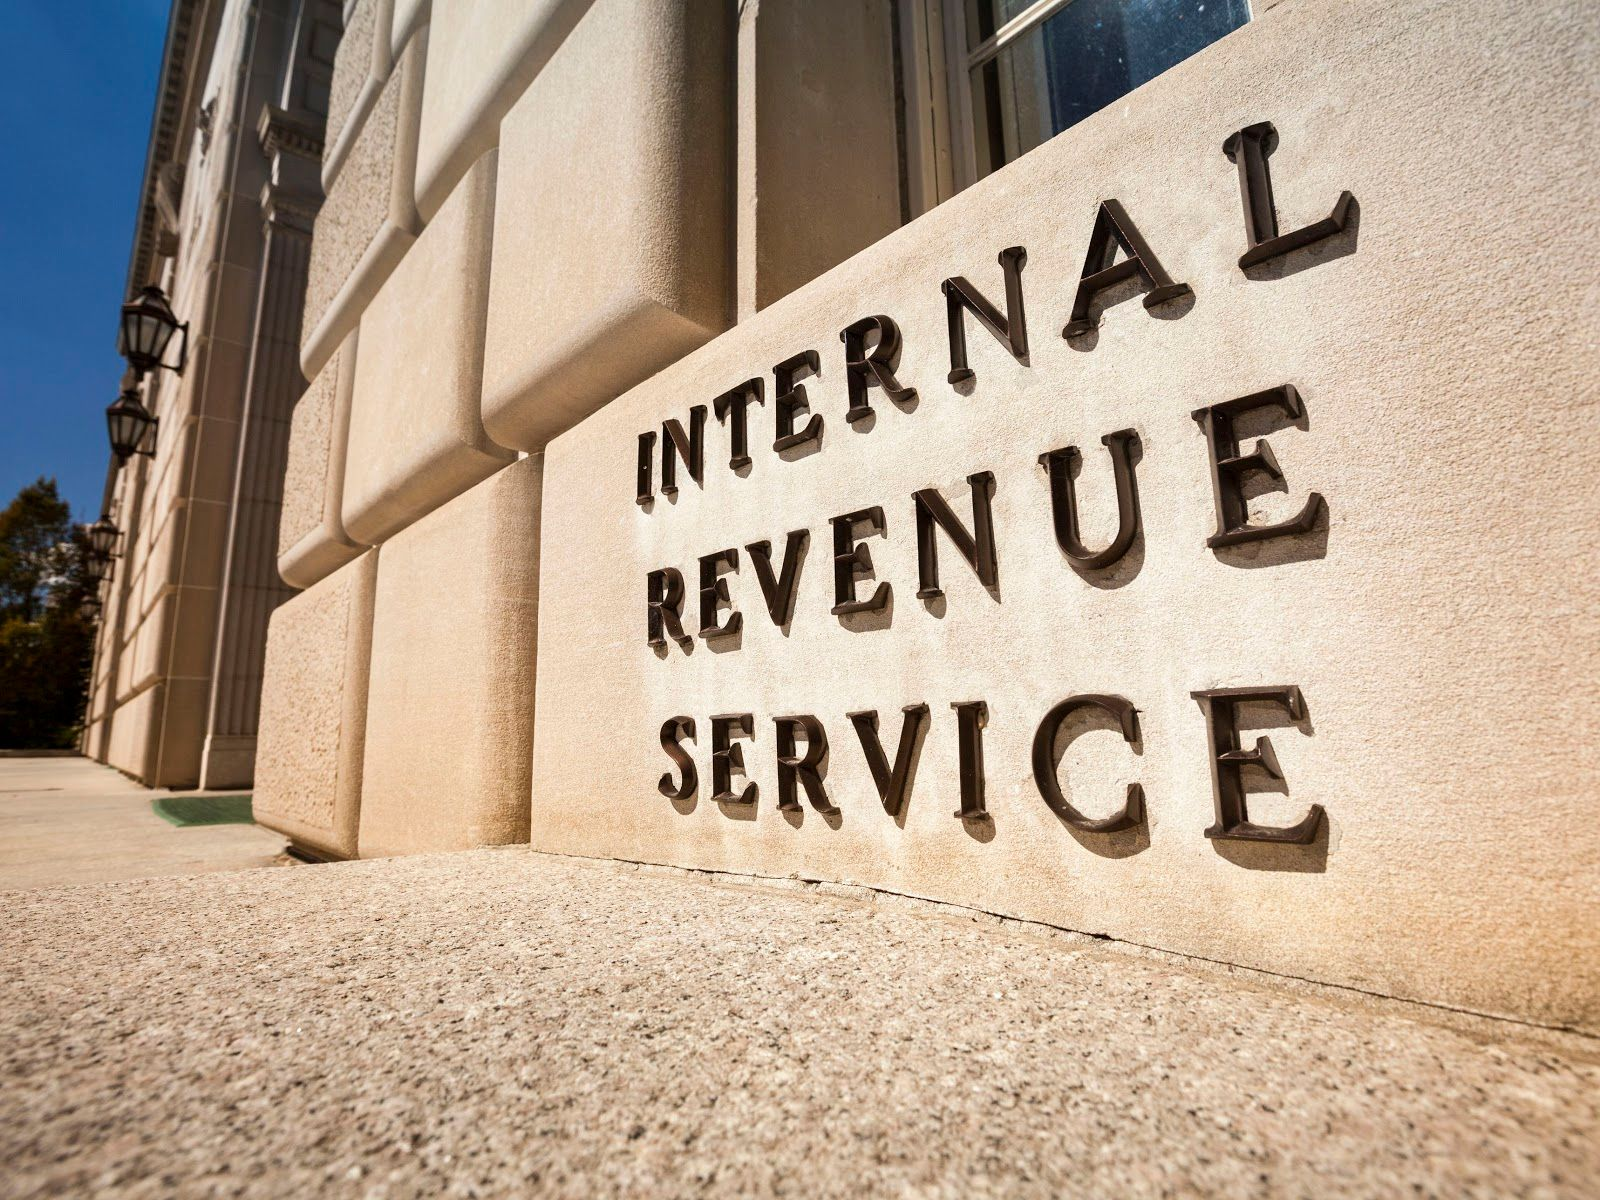 Latest Bitcoin News From the IRS